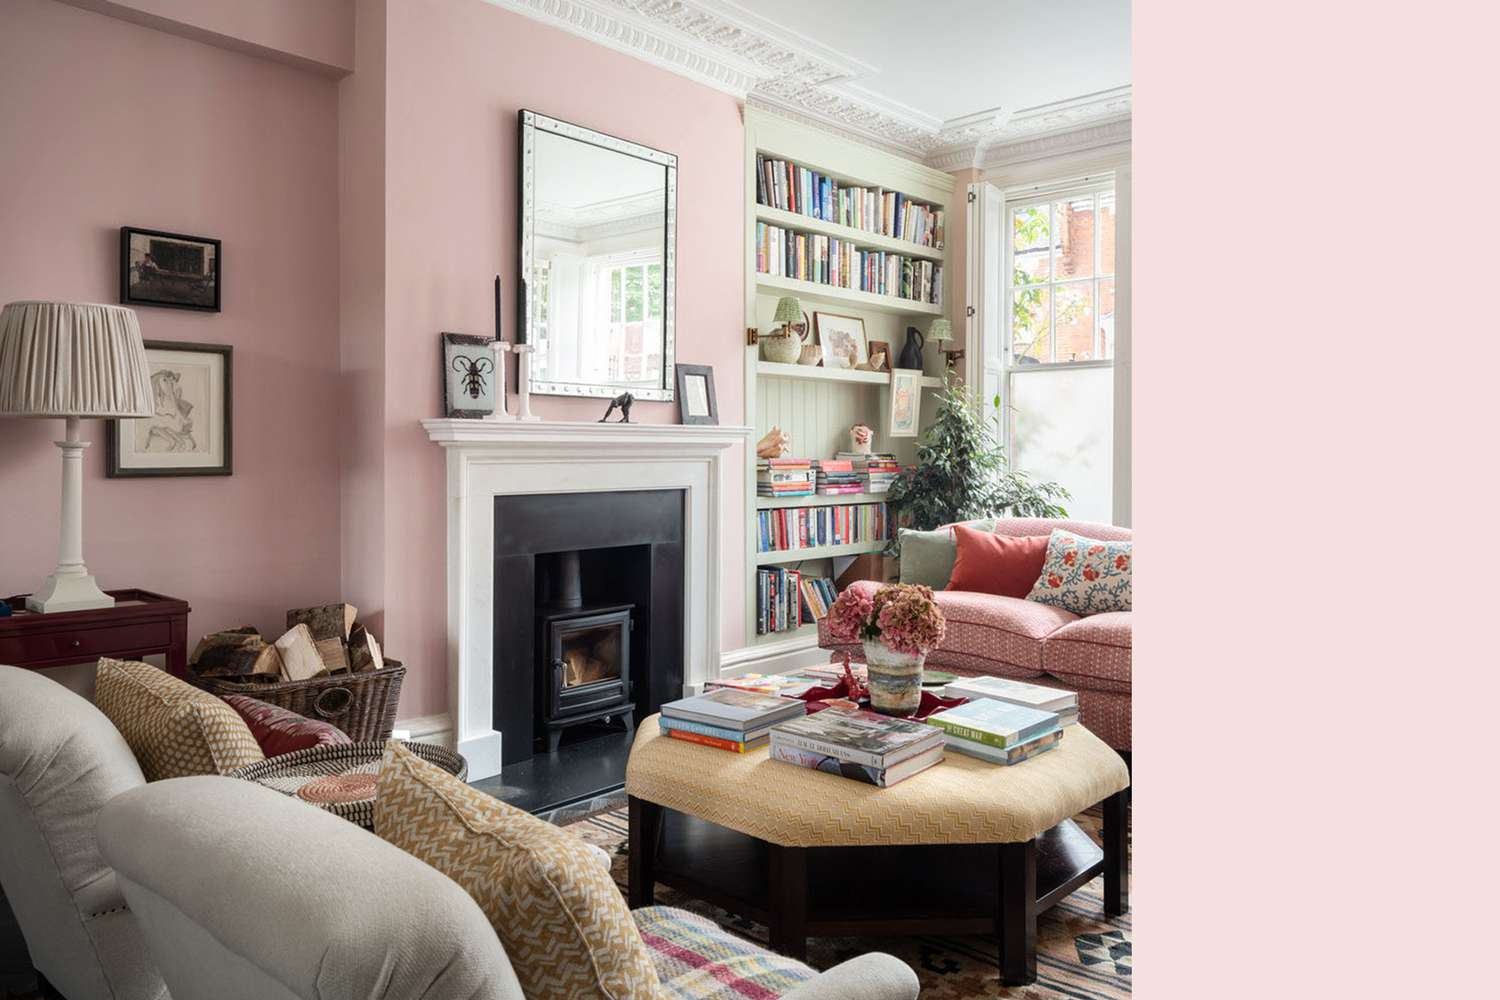 Interior painted a similar color to Middleton Pink